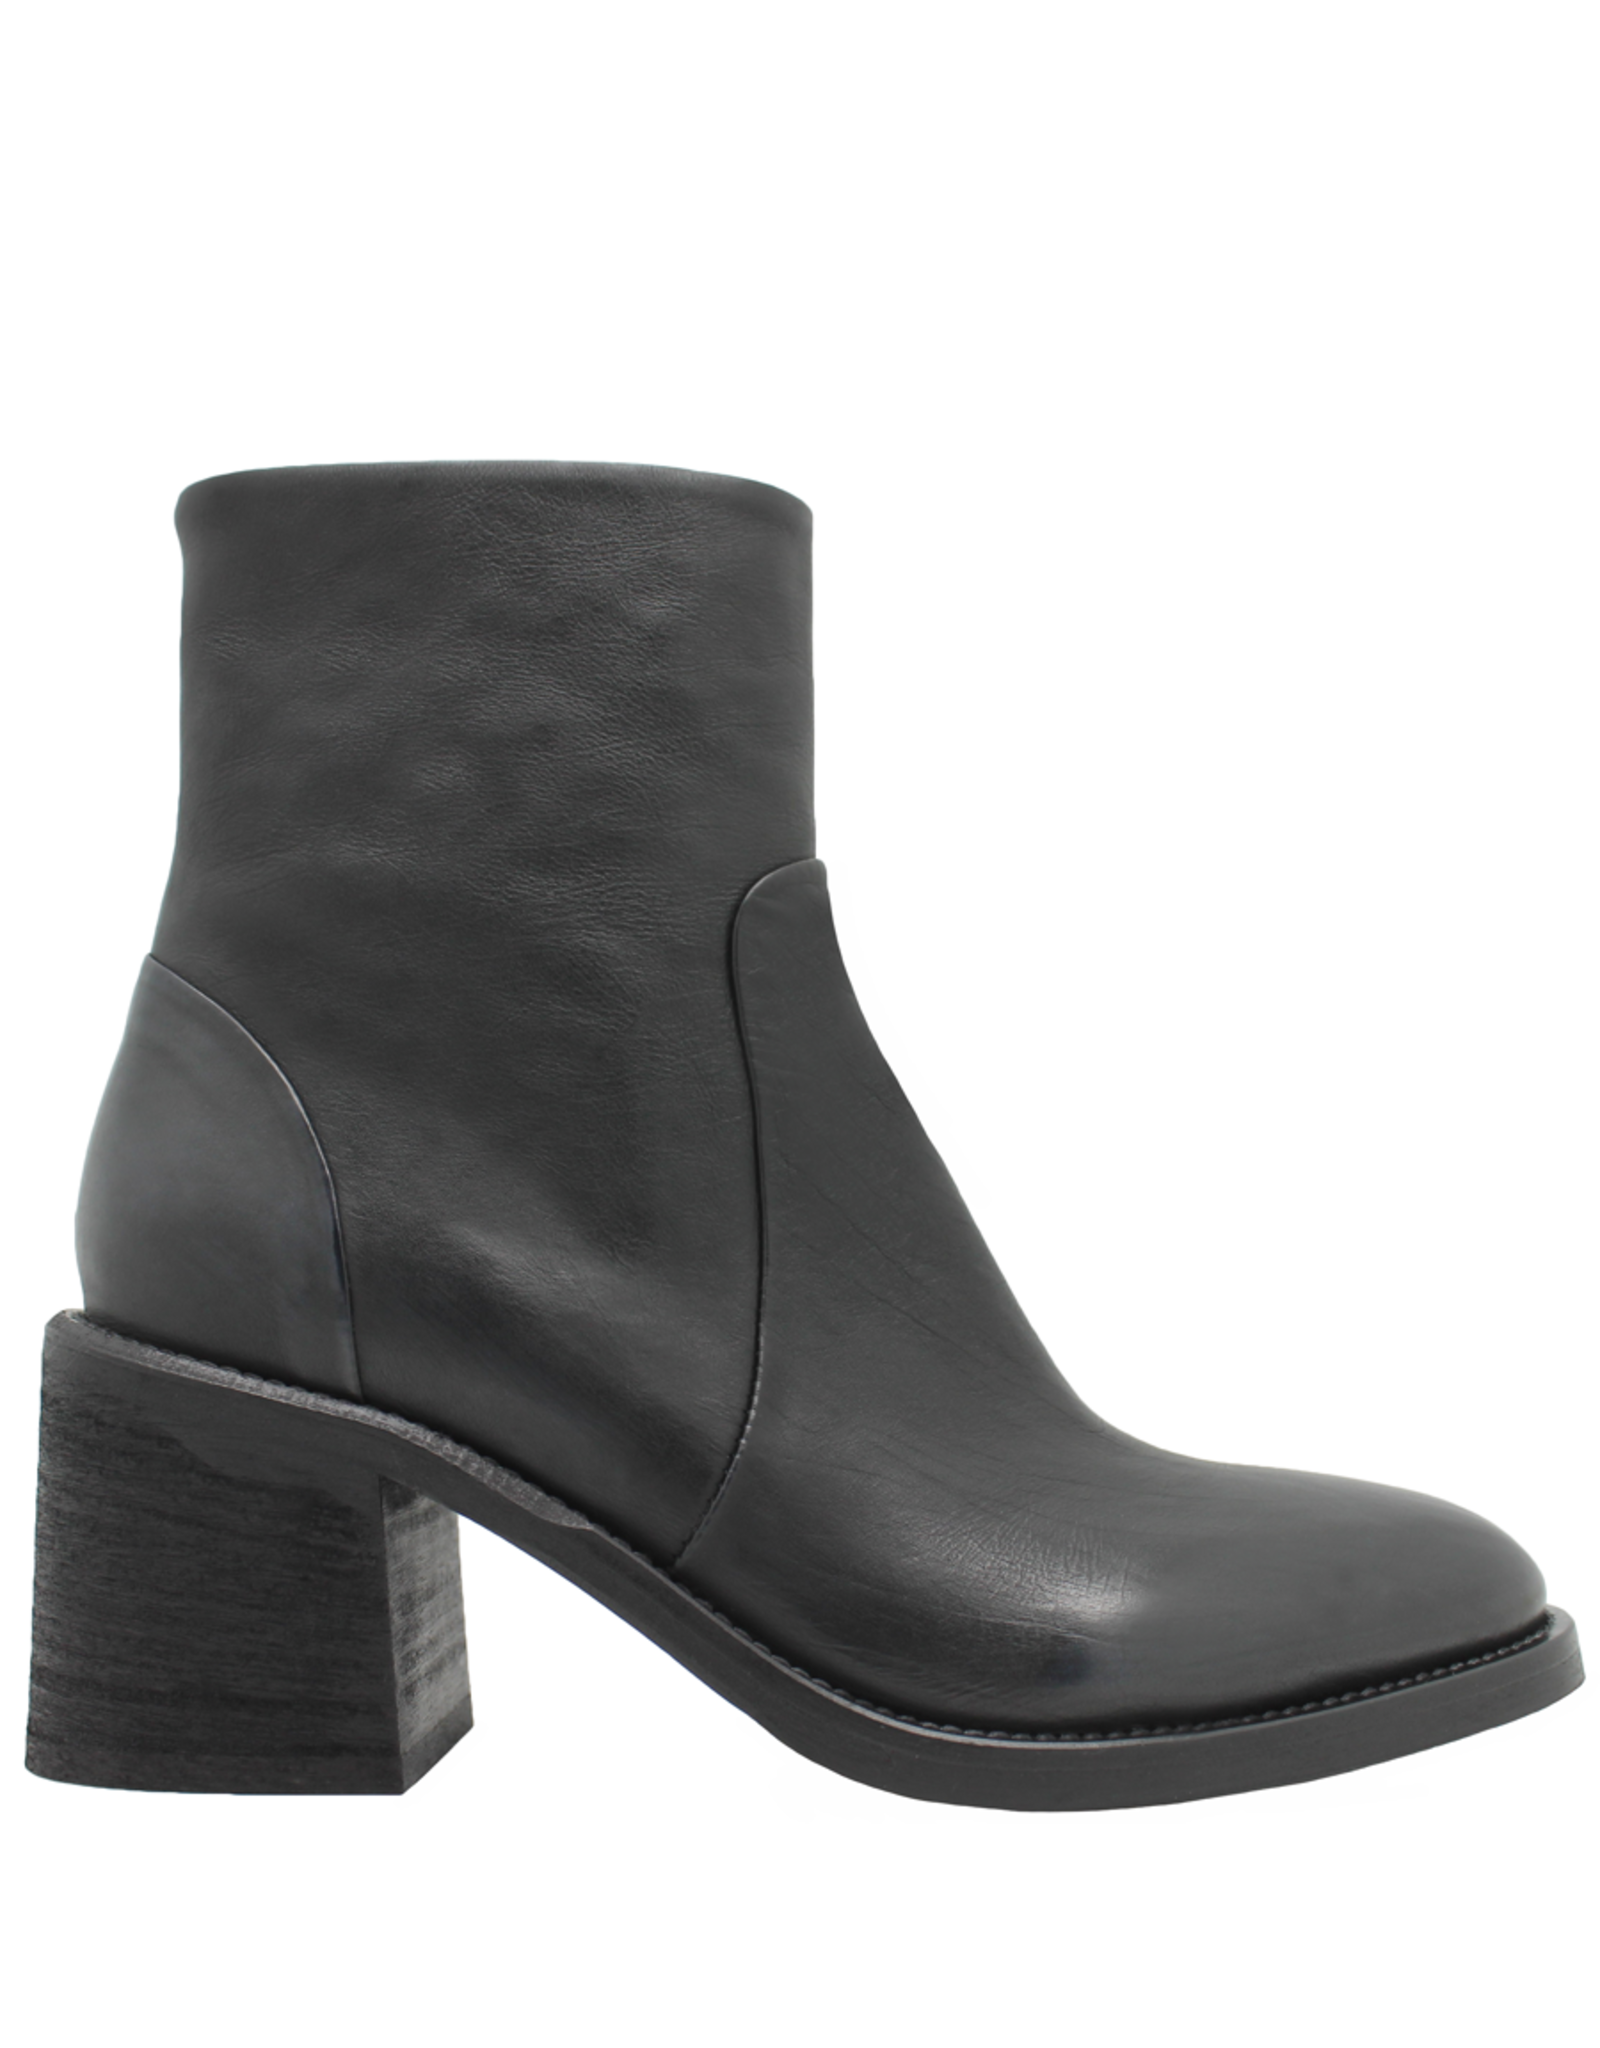 Now Now Blue Side Zipper Ankle  Boot 7171